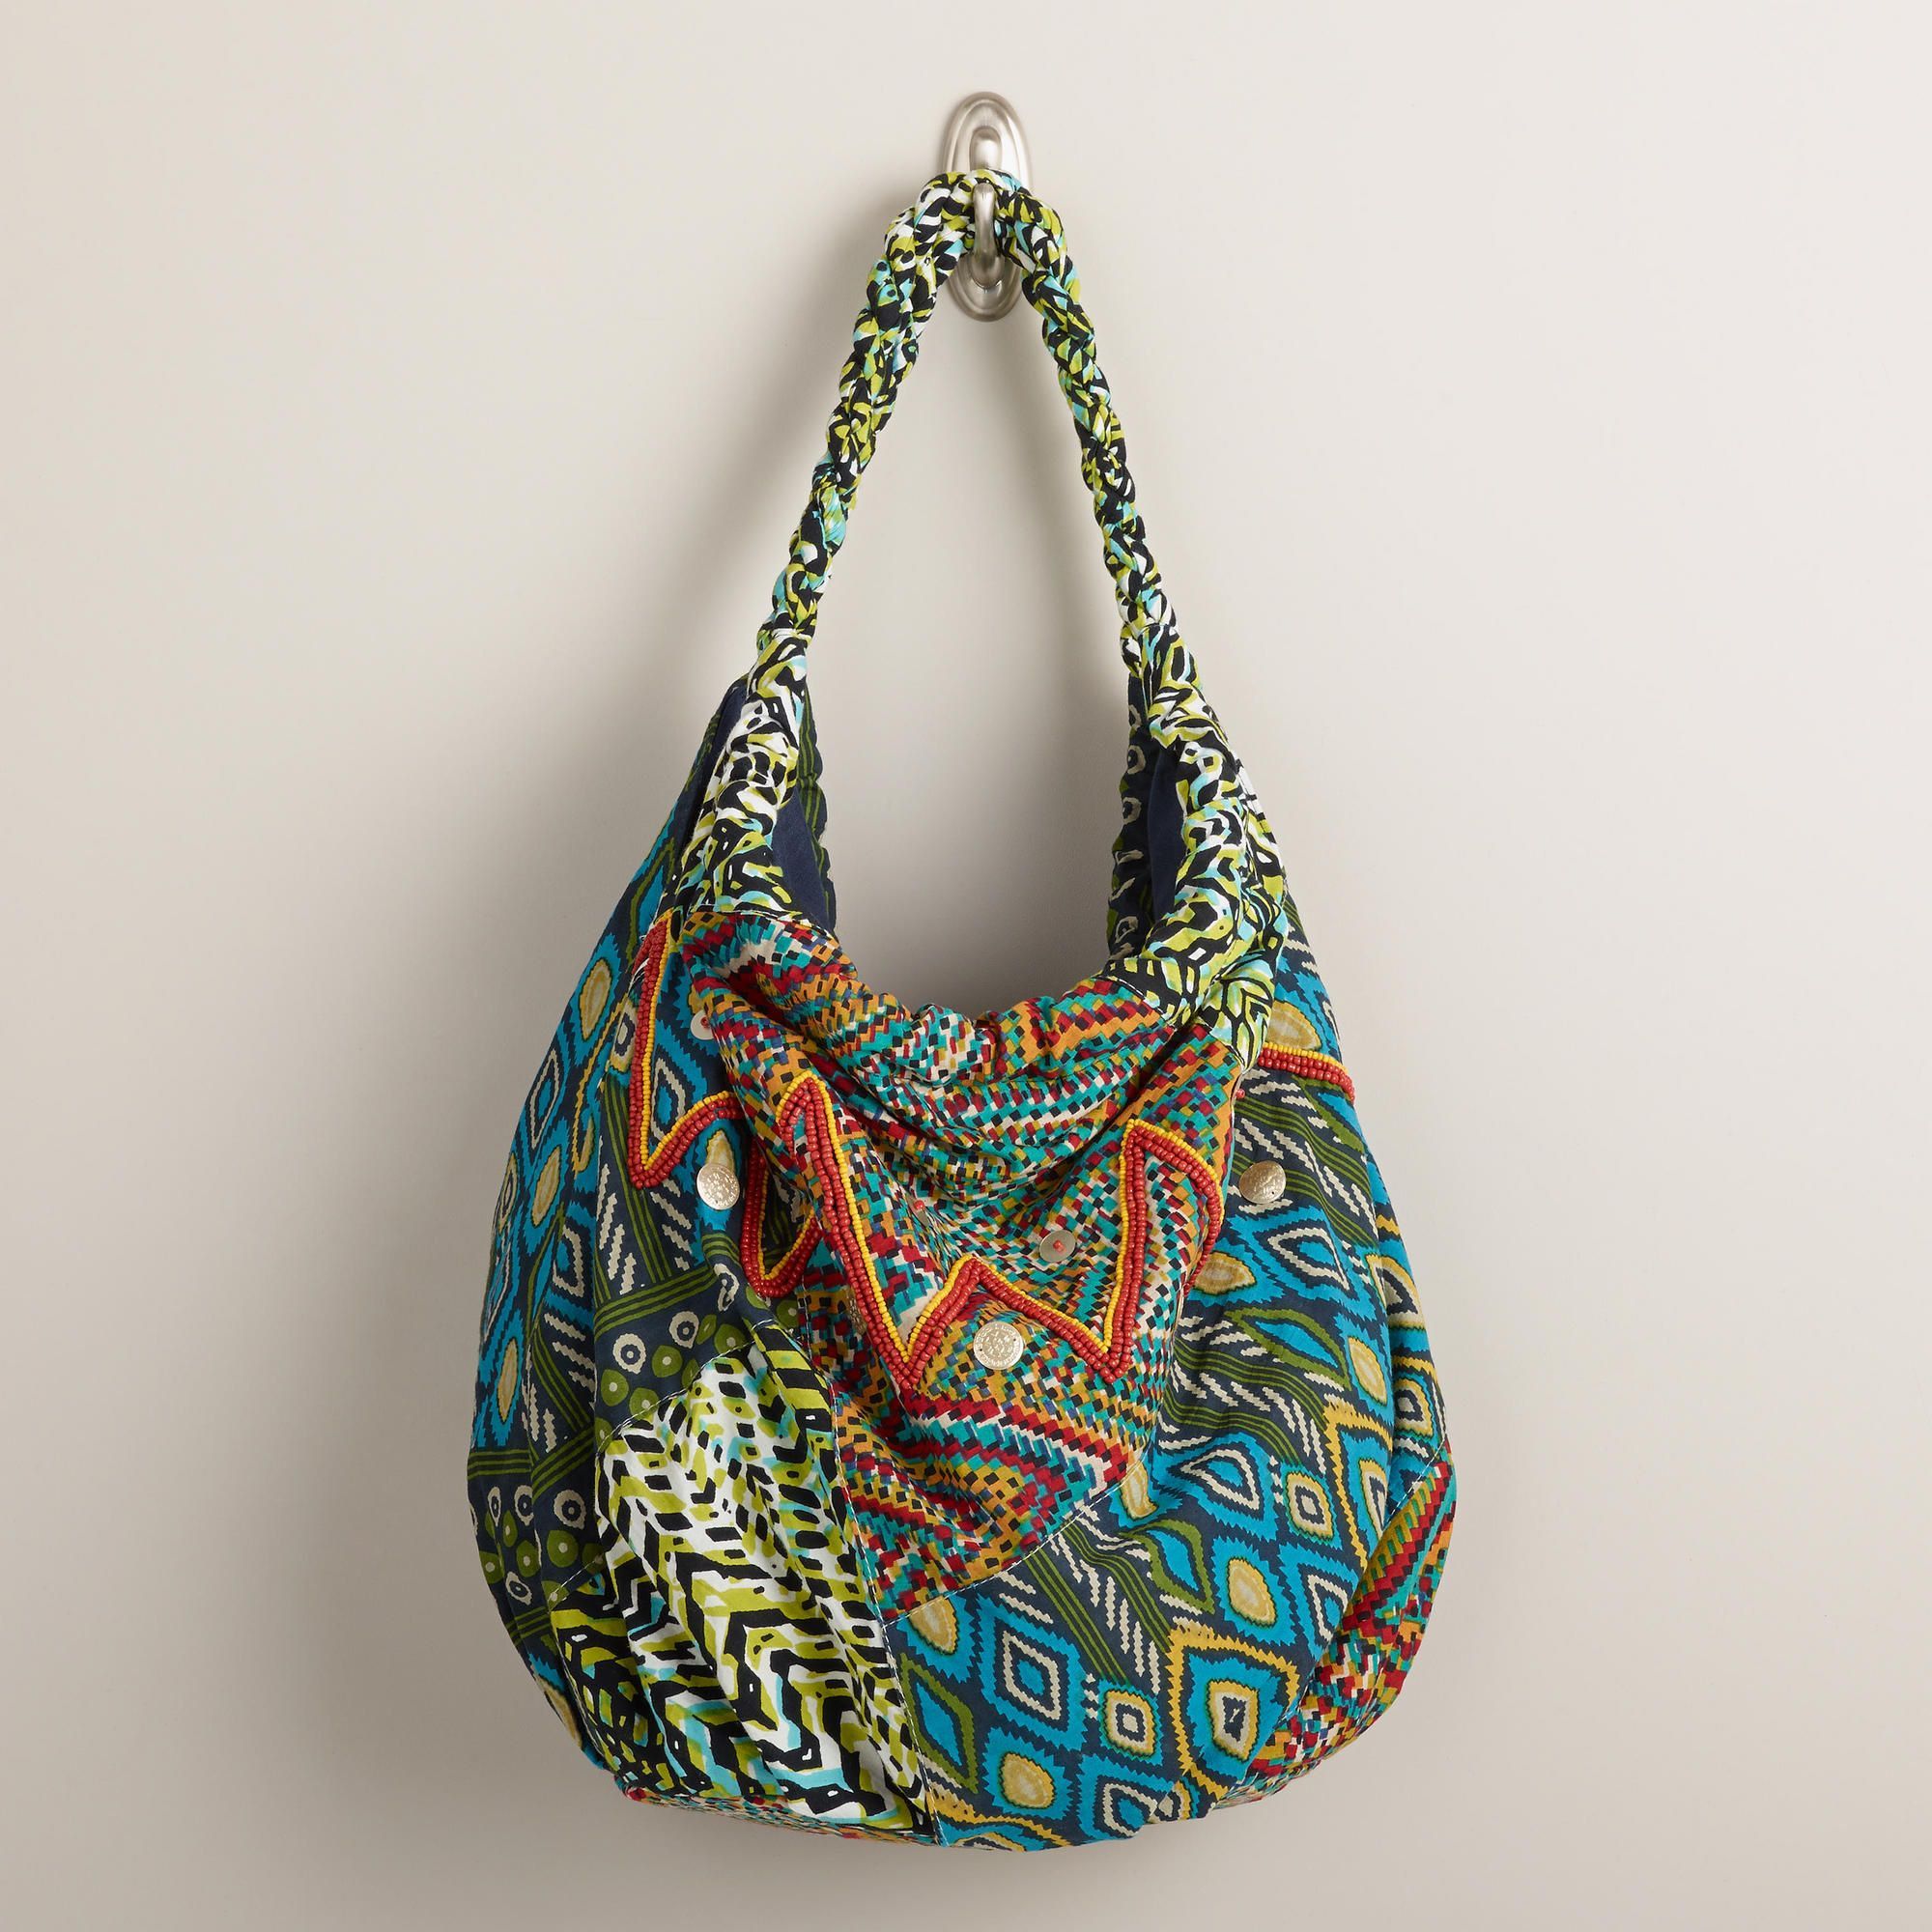 Large multicolored bag. Only $30. Love. #bag #purse #boho